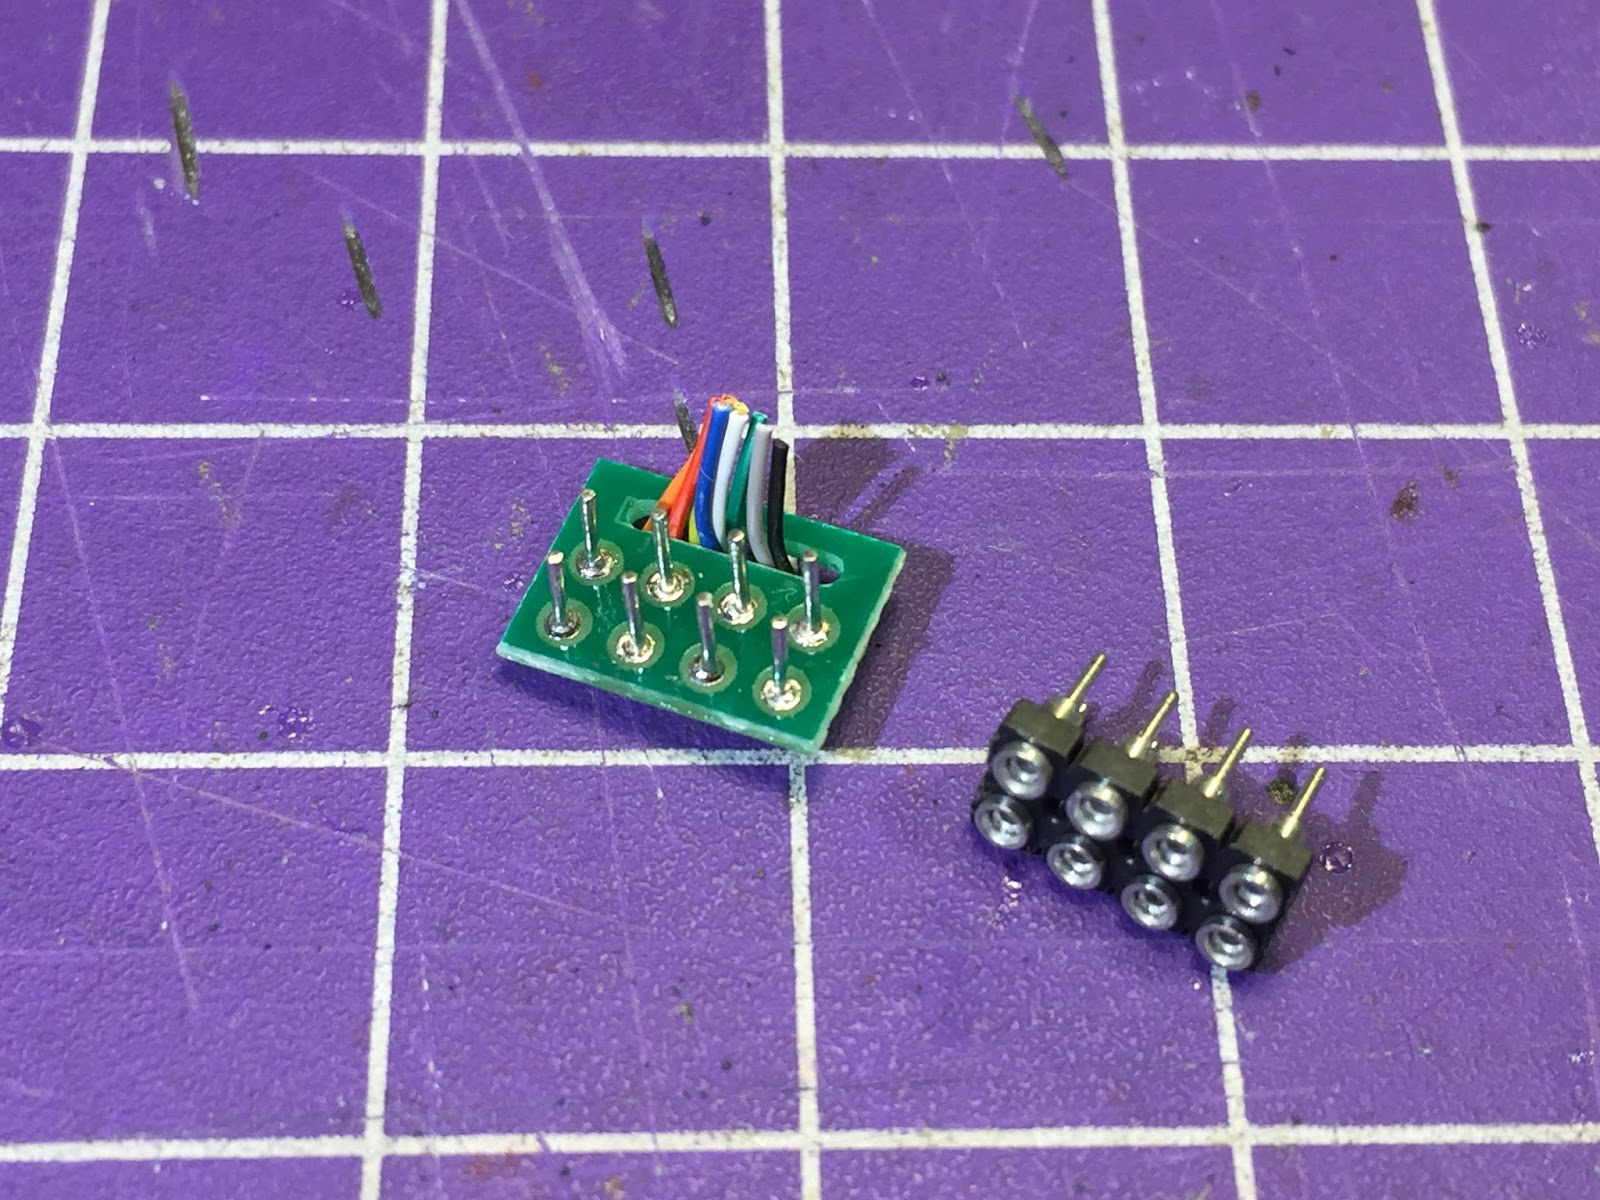 snipped loksound plug on the left, with tiny wire pigtails